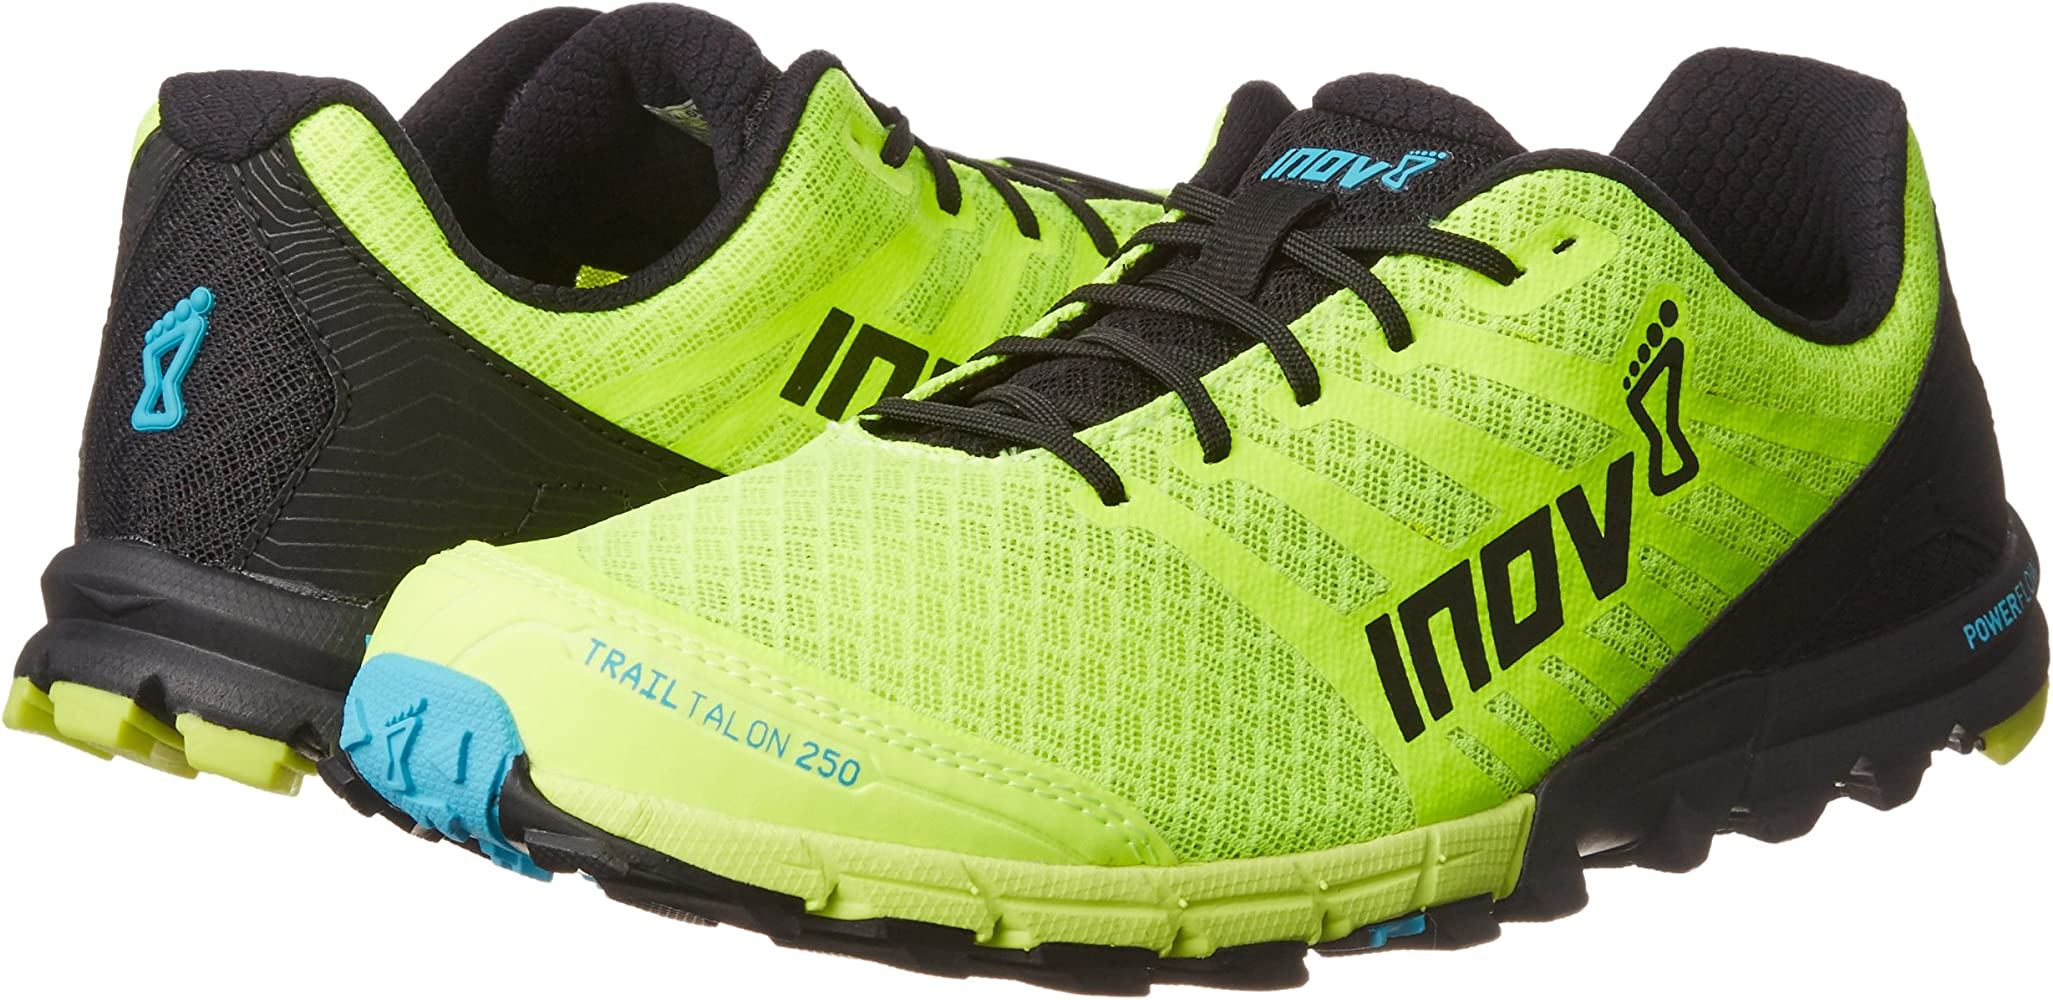 ZAPATILLA INOV-8 TRAIL TALON 250 AMARILLA: Amazon.es: Deportes y ...